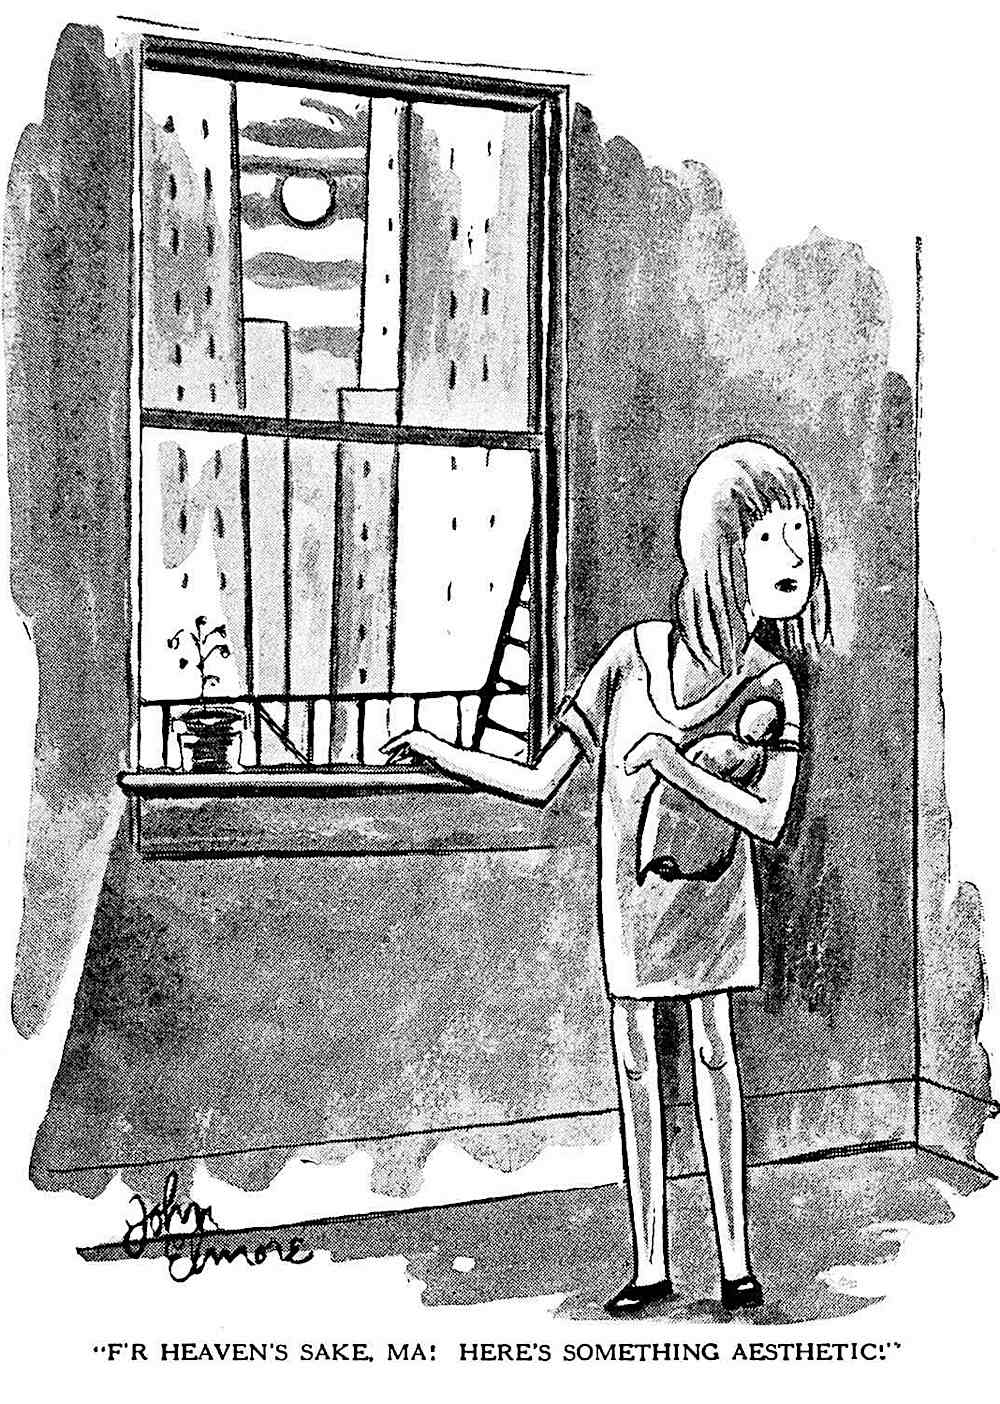 a 1929 Canadian cartoon about poverty